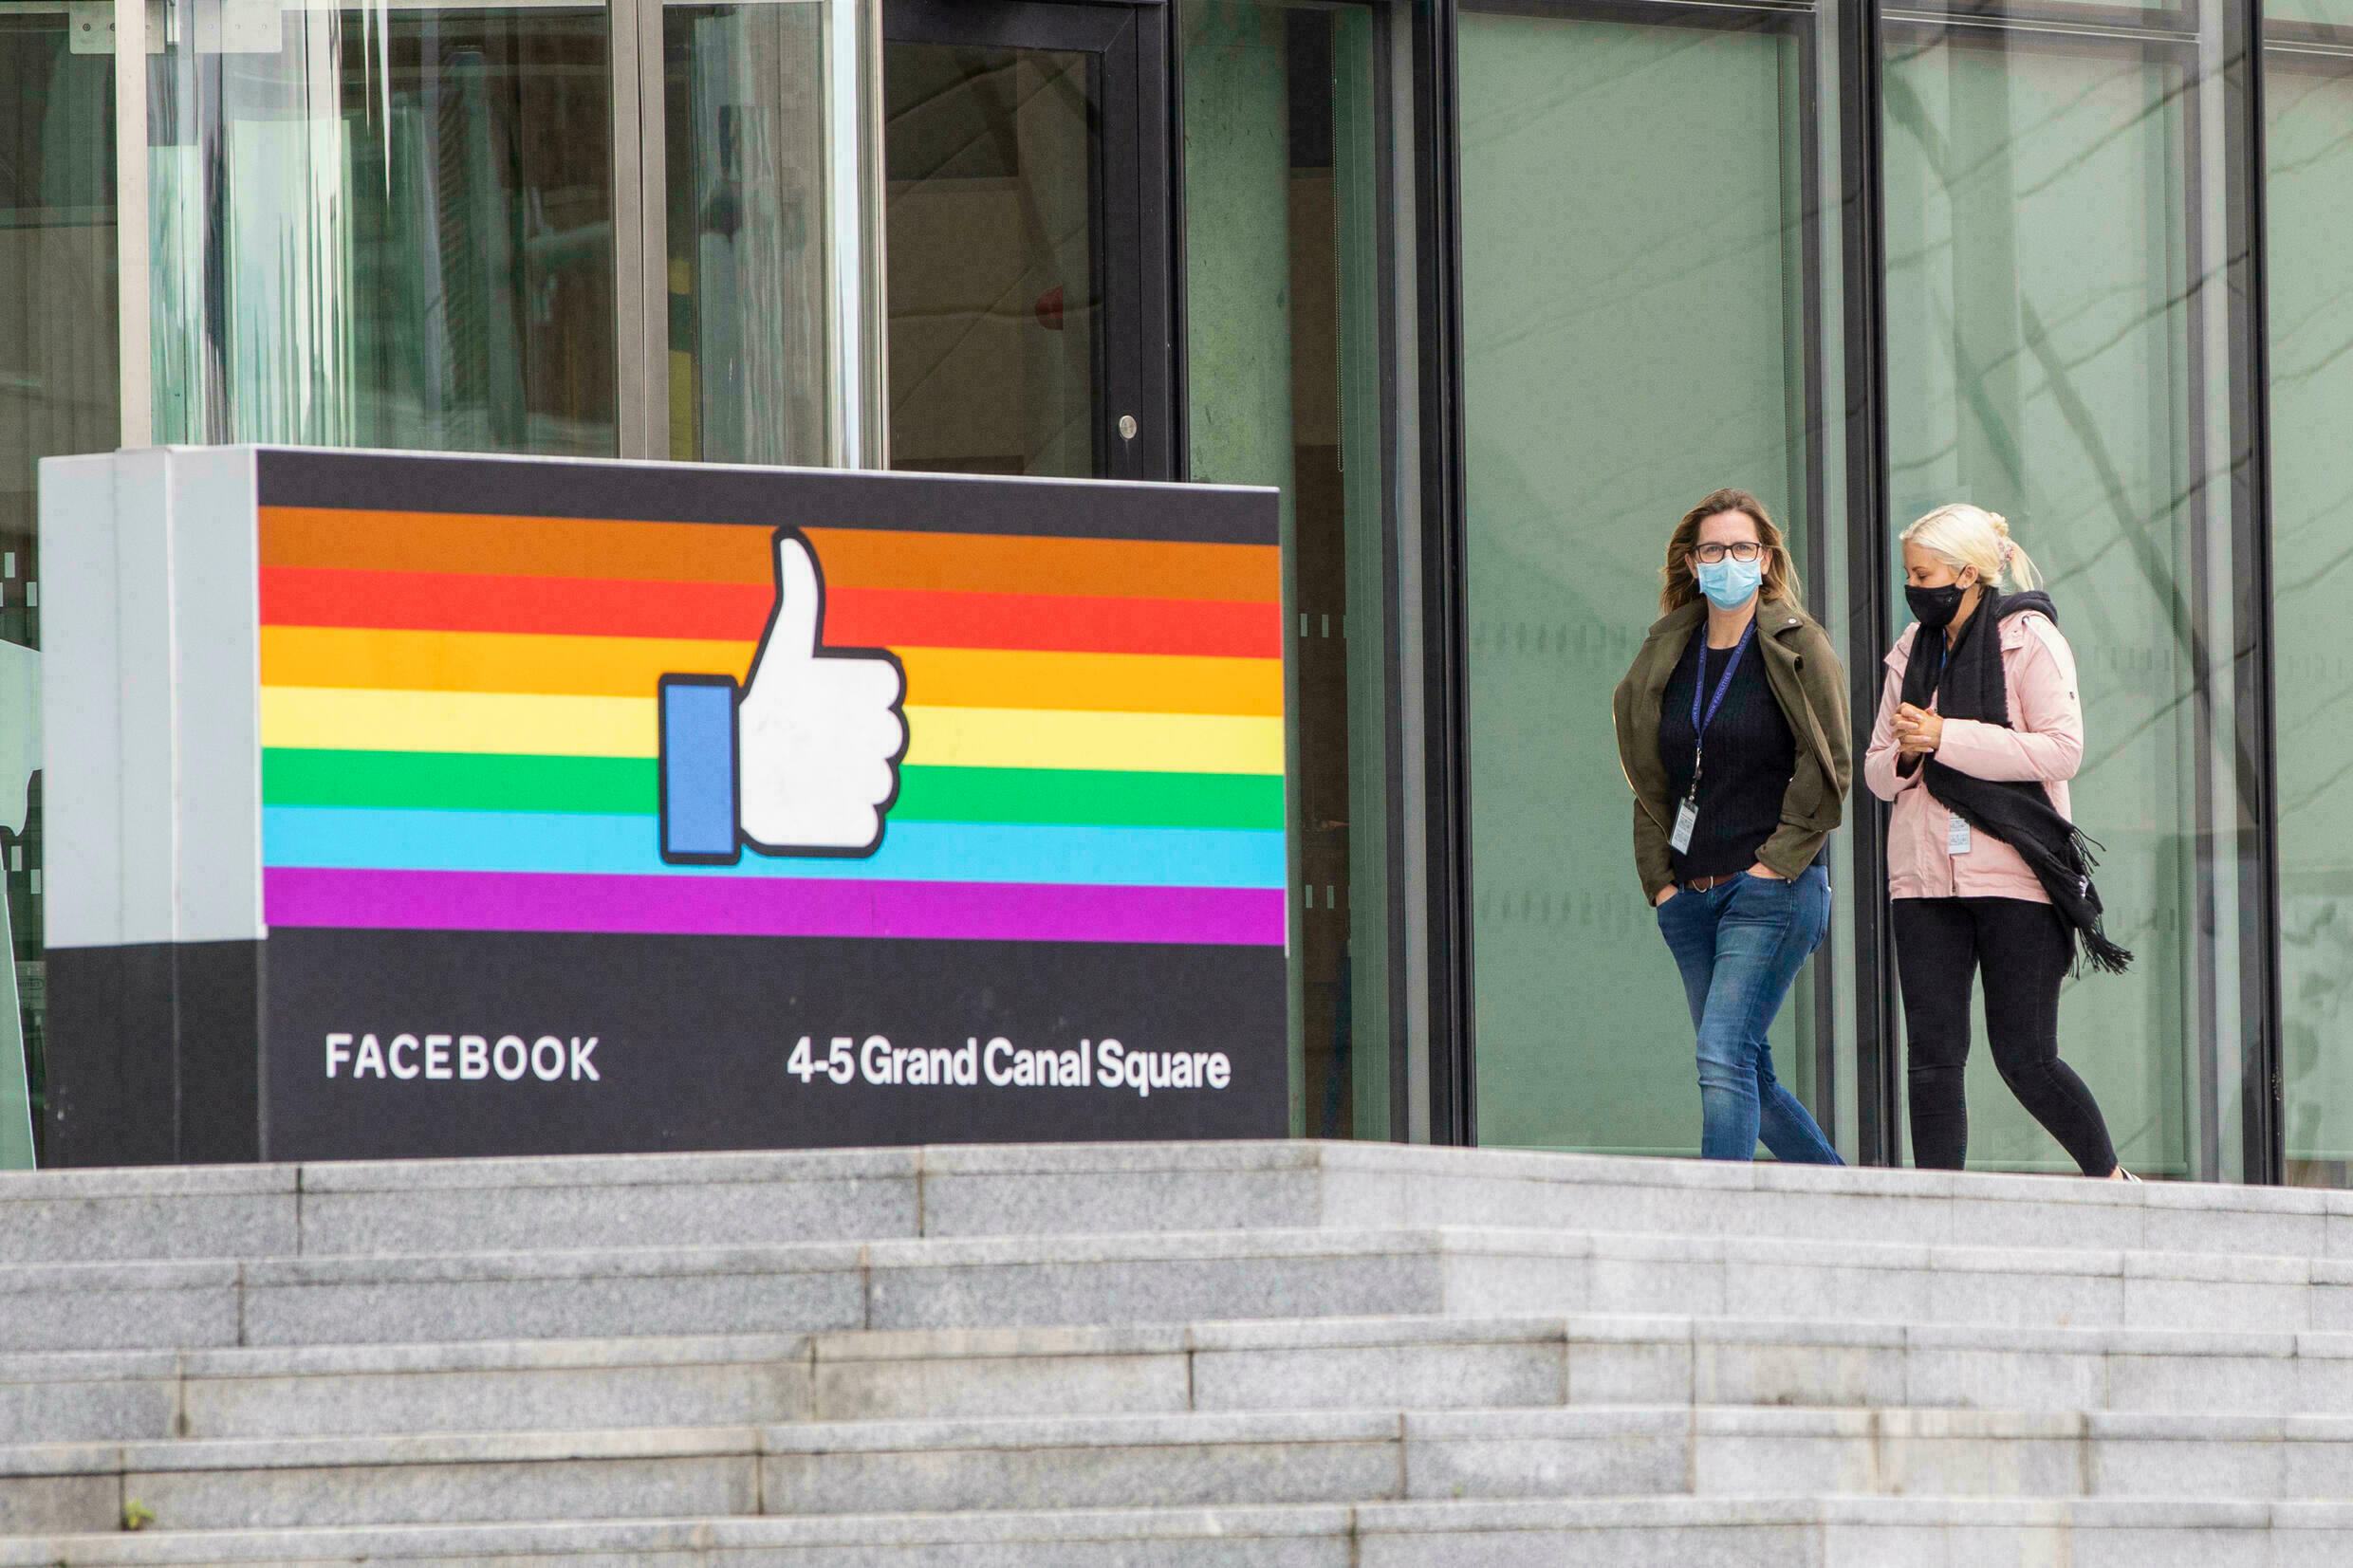 Facebook offices in Dublin's central business district on October 7, 2021